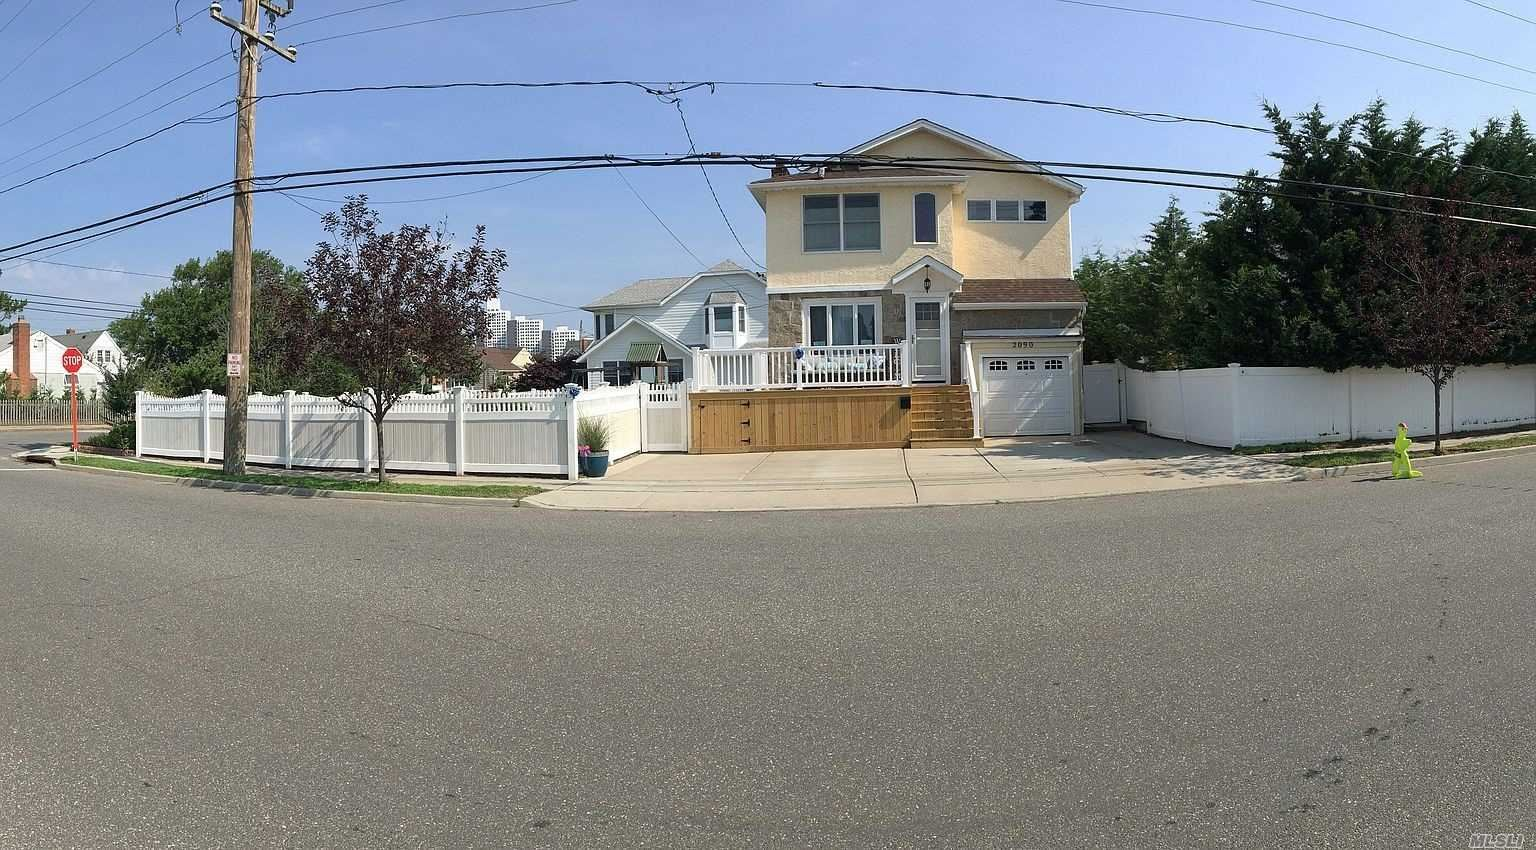 2090 Atlantic Blvd, Atlantic Beach, NY 11509 - MLS#: 3237773